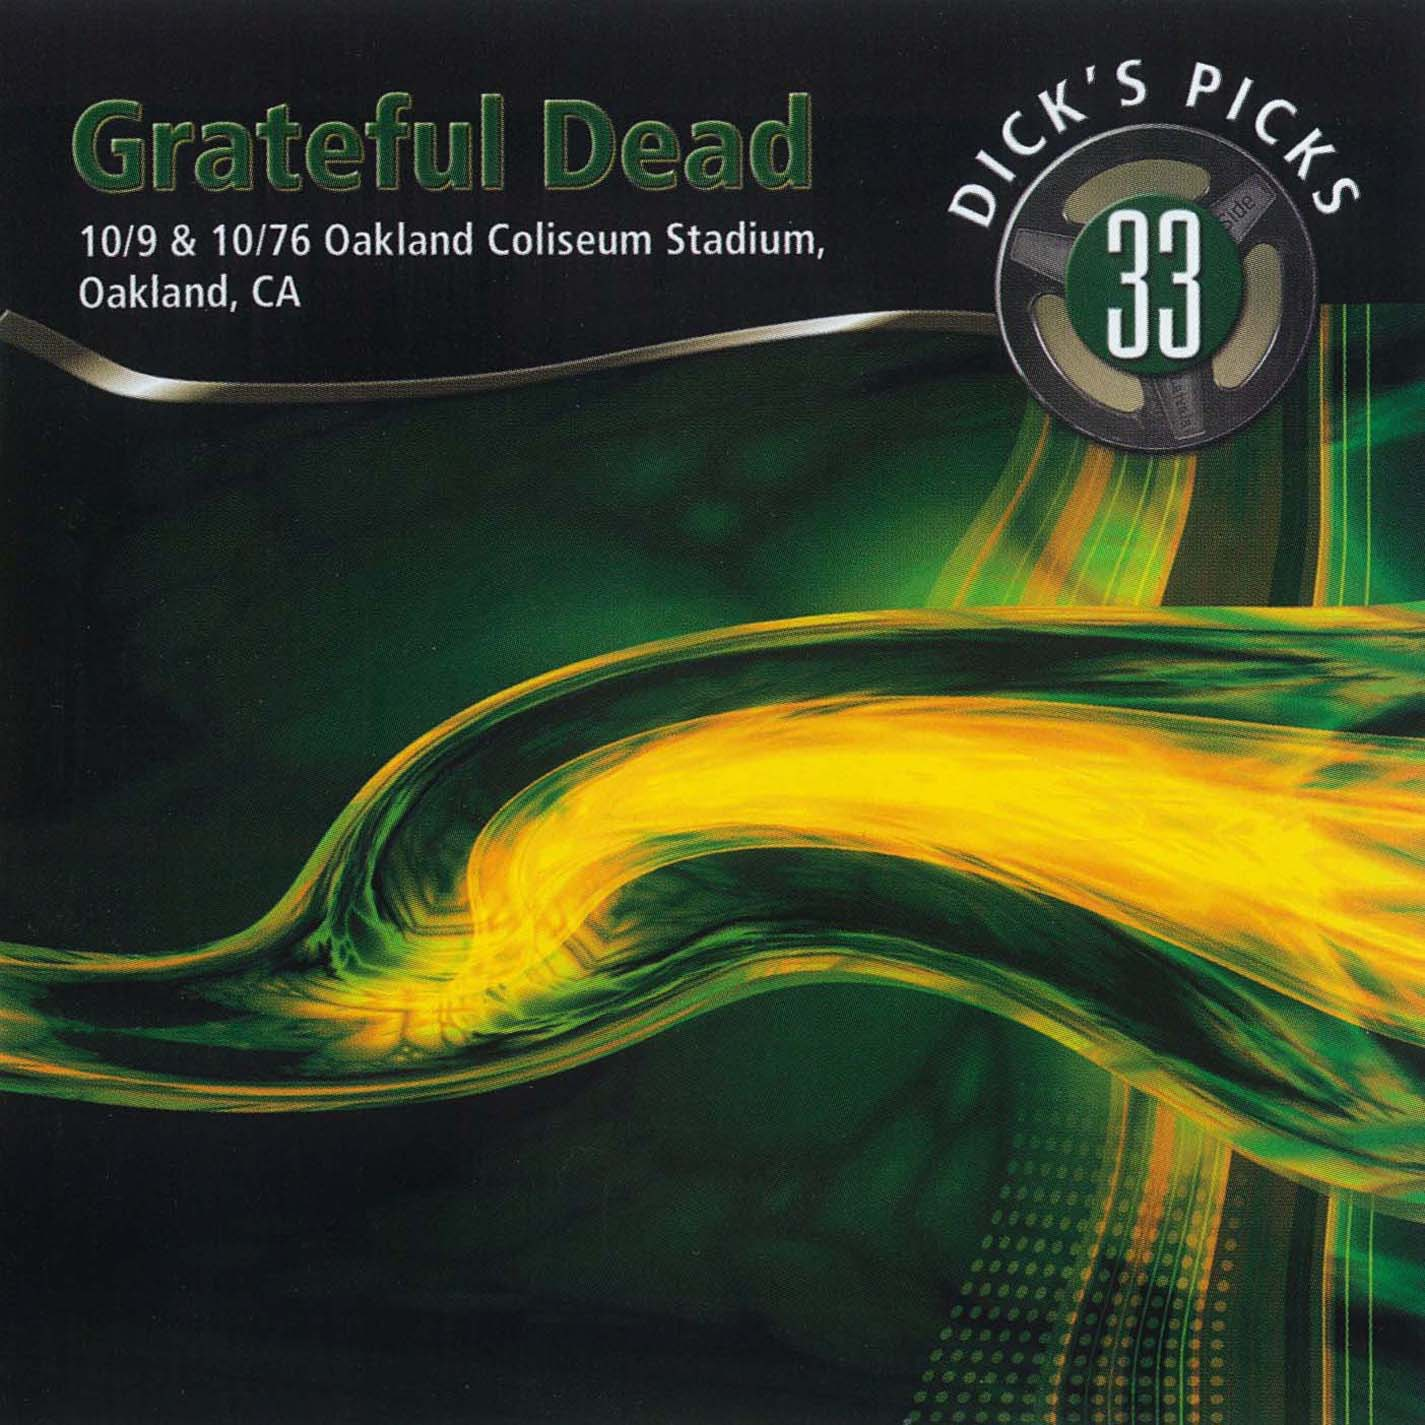 Grateful Dead Dick's Picks 33 album cover artwork